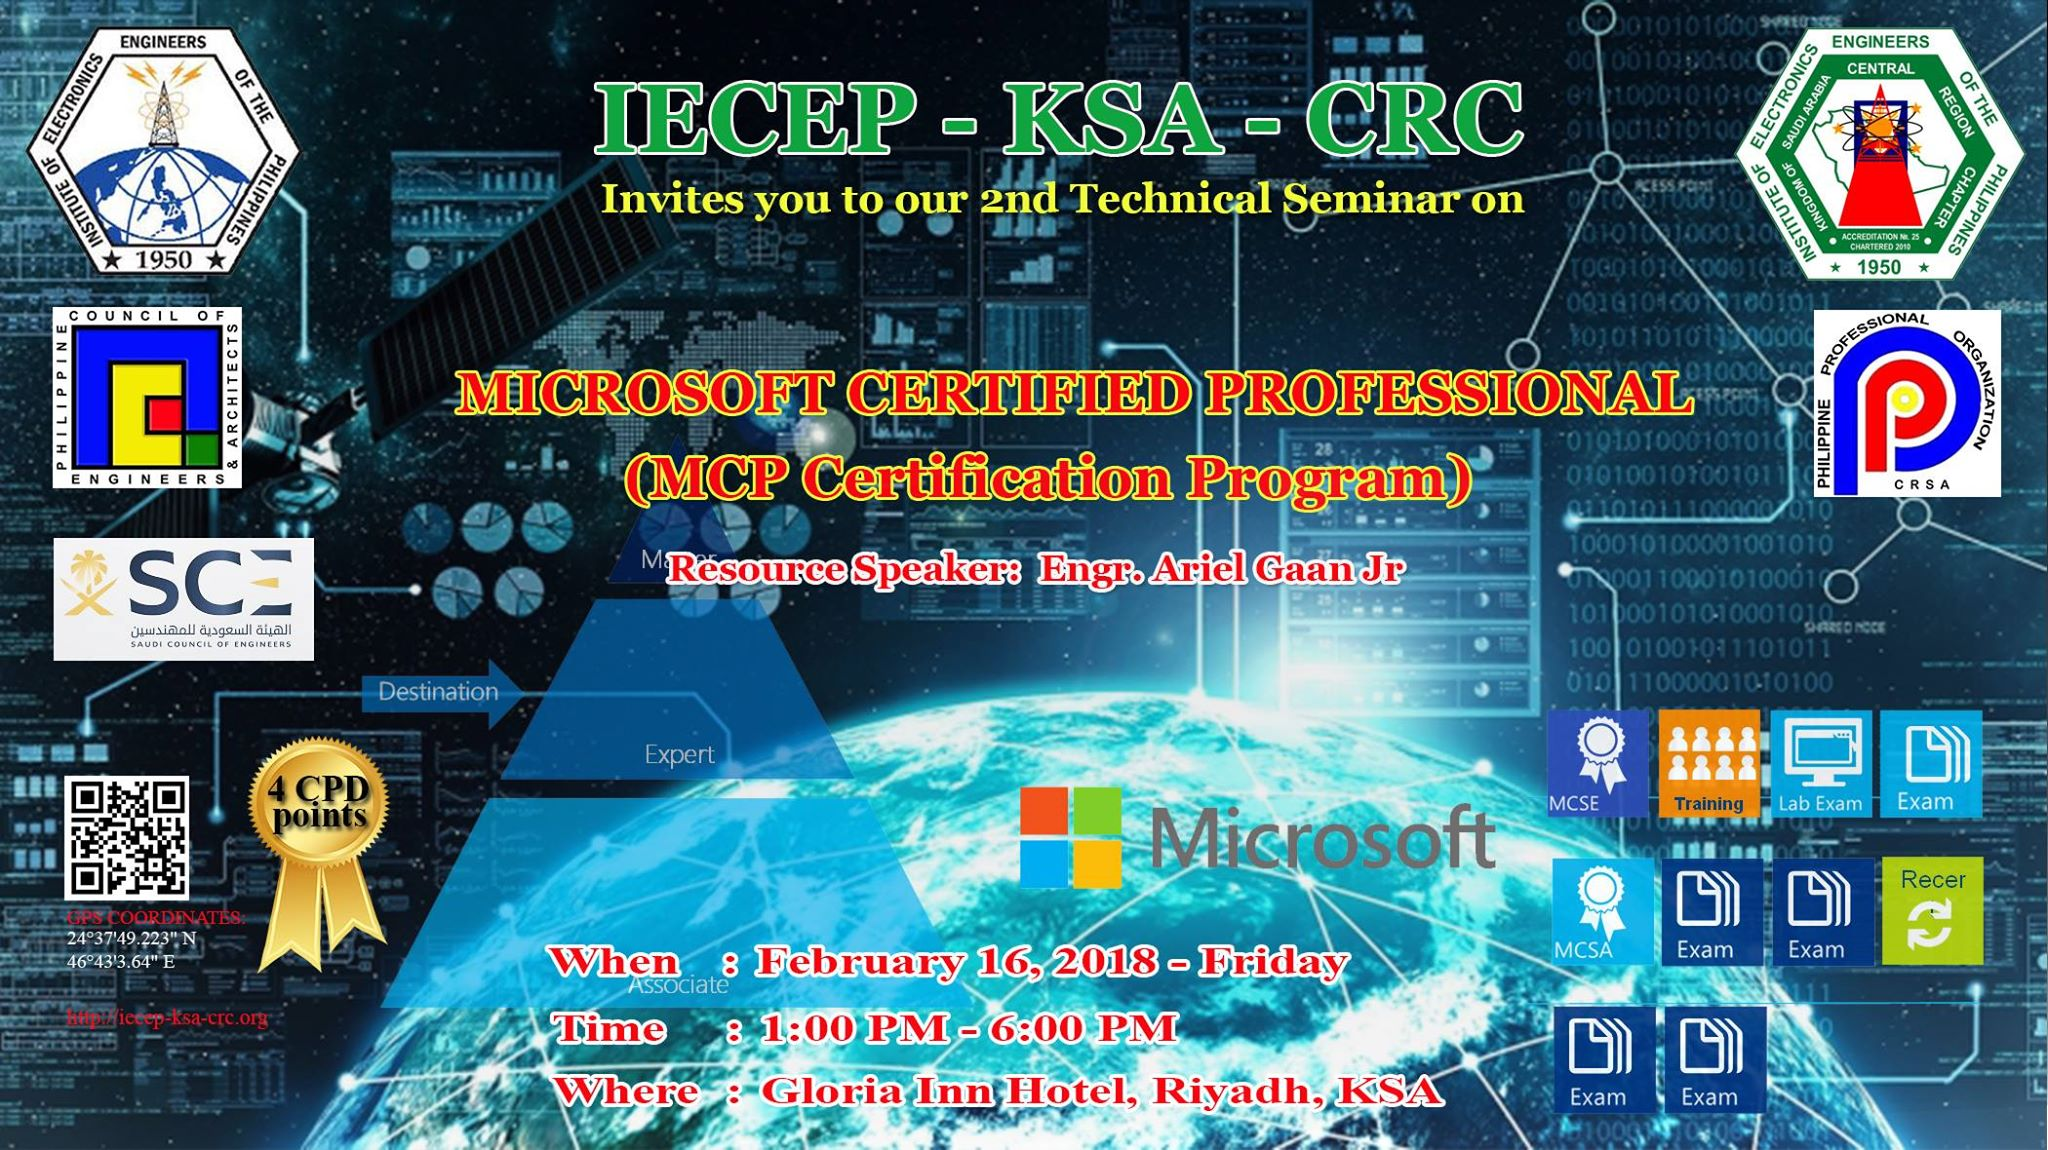 Iecep ksa central region chapter registrations microsoft certified professional certification program 1betcityfo Images